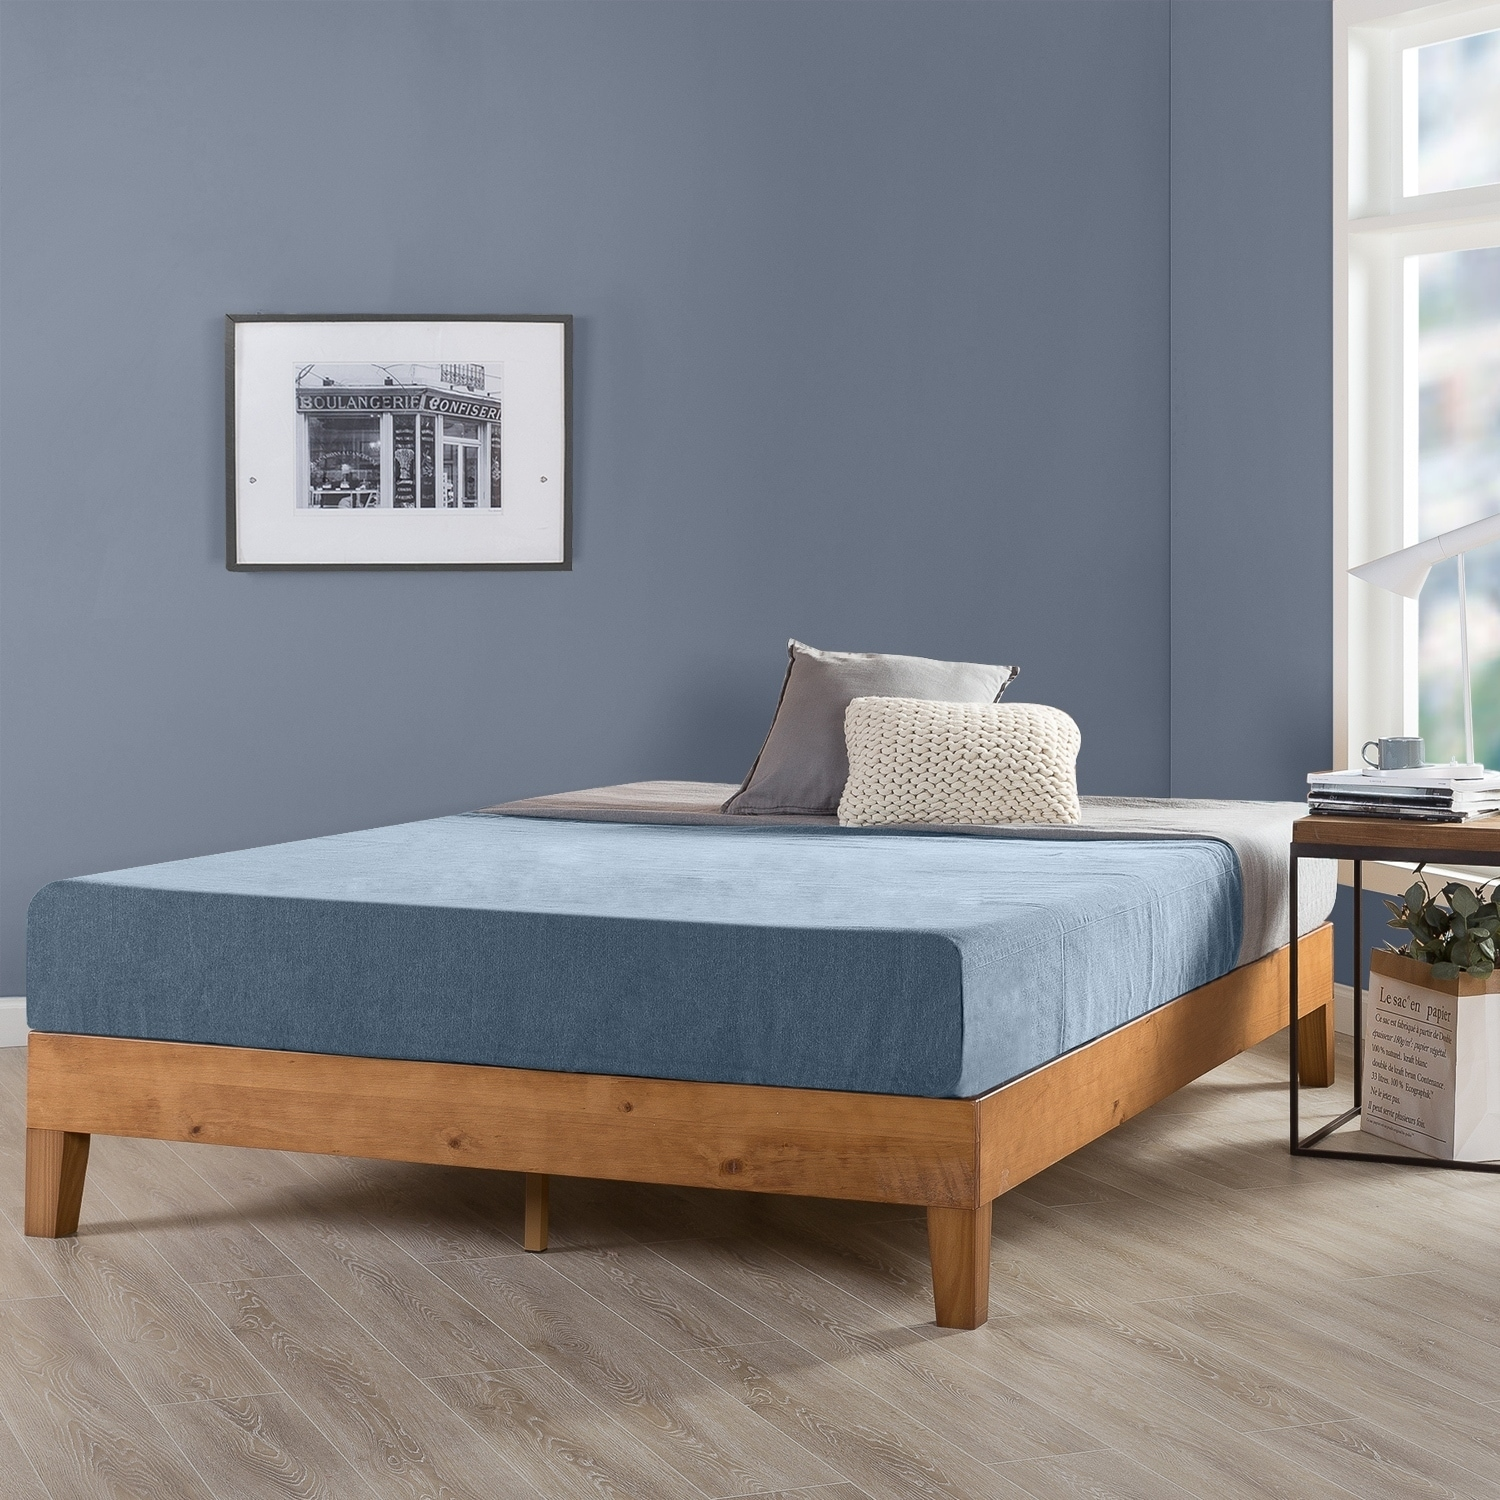 King Size 12 Inch Grand Solid Wood Platform Bed Frame, Natural - Crown Comfort (King - Casual/Traditional/Modern & Contemporary - Wood)